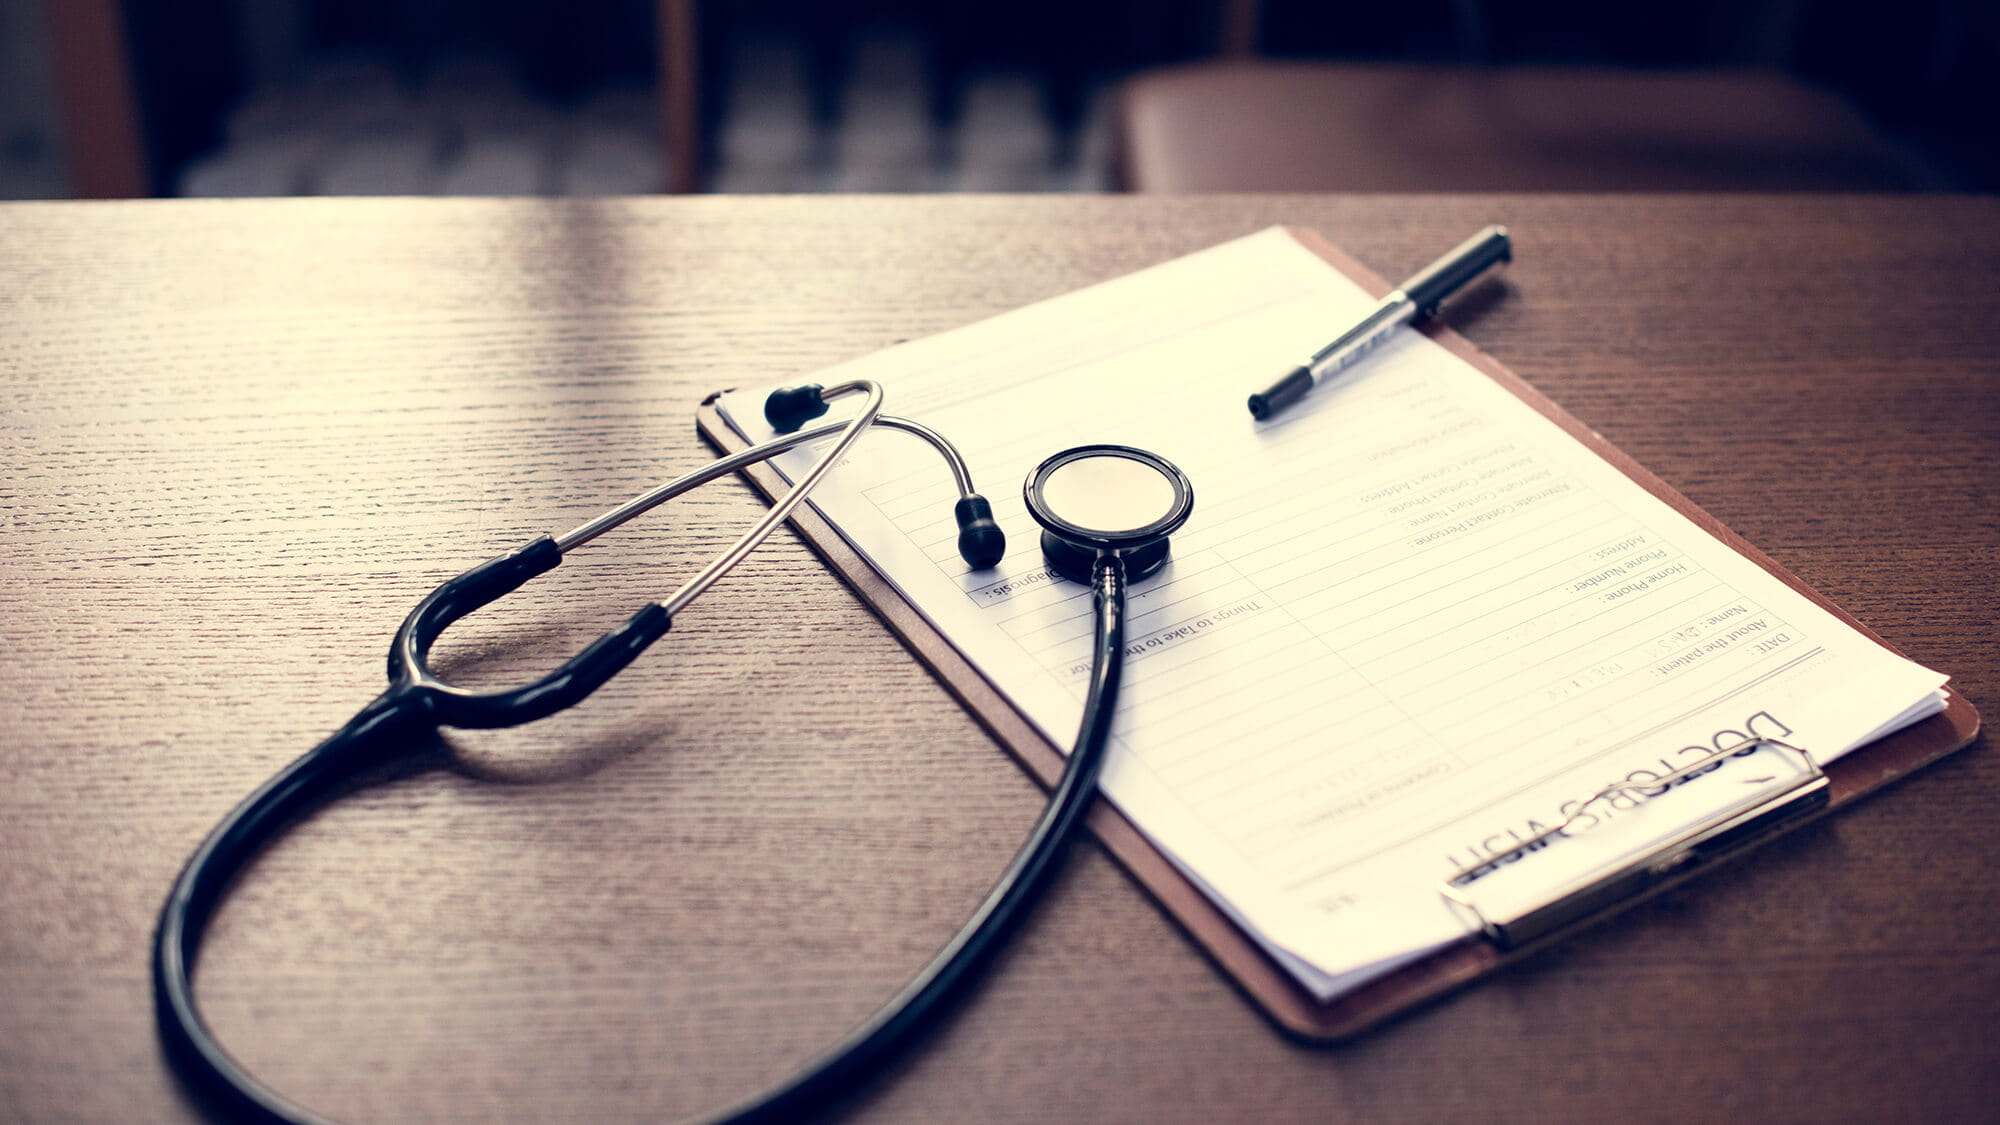 checkup form and stethoscope on desk